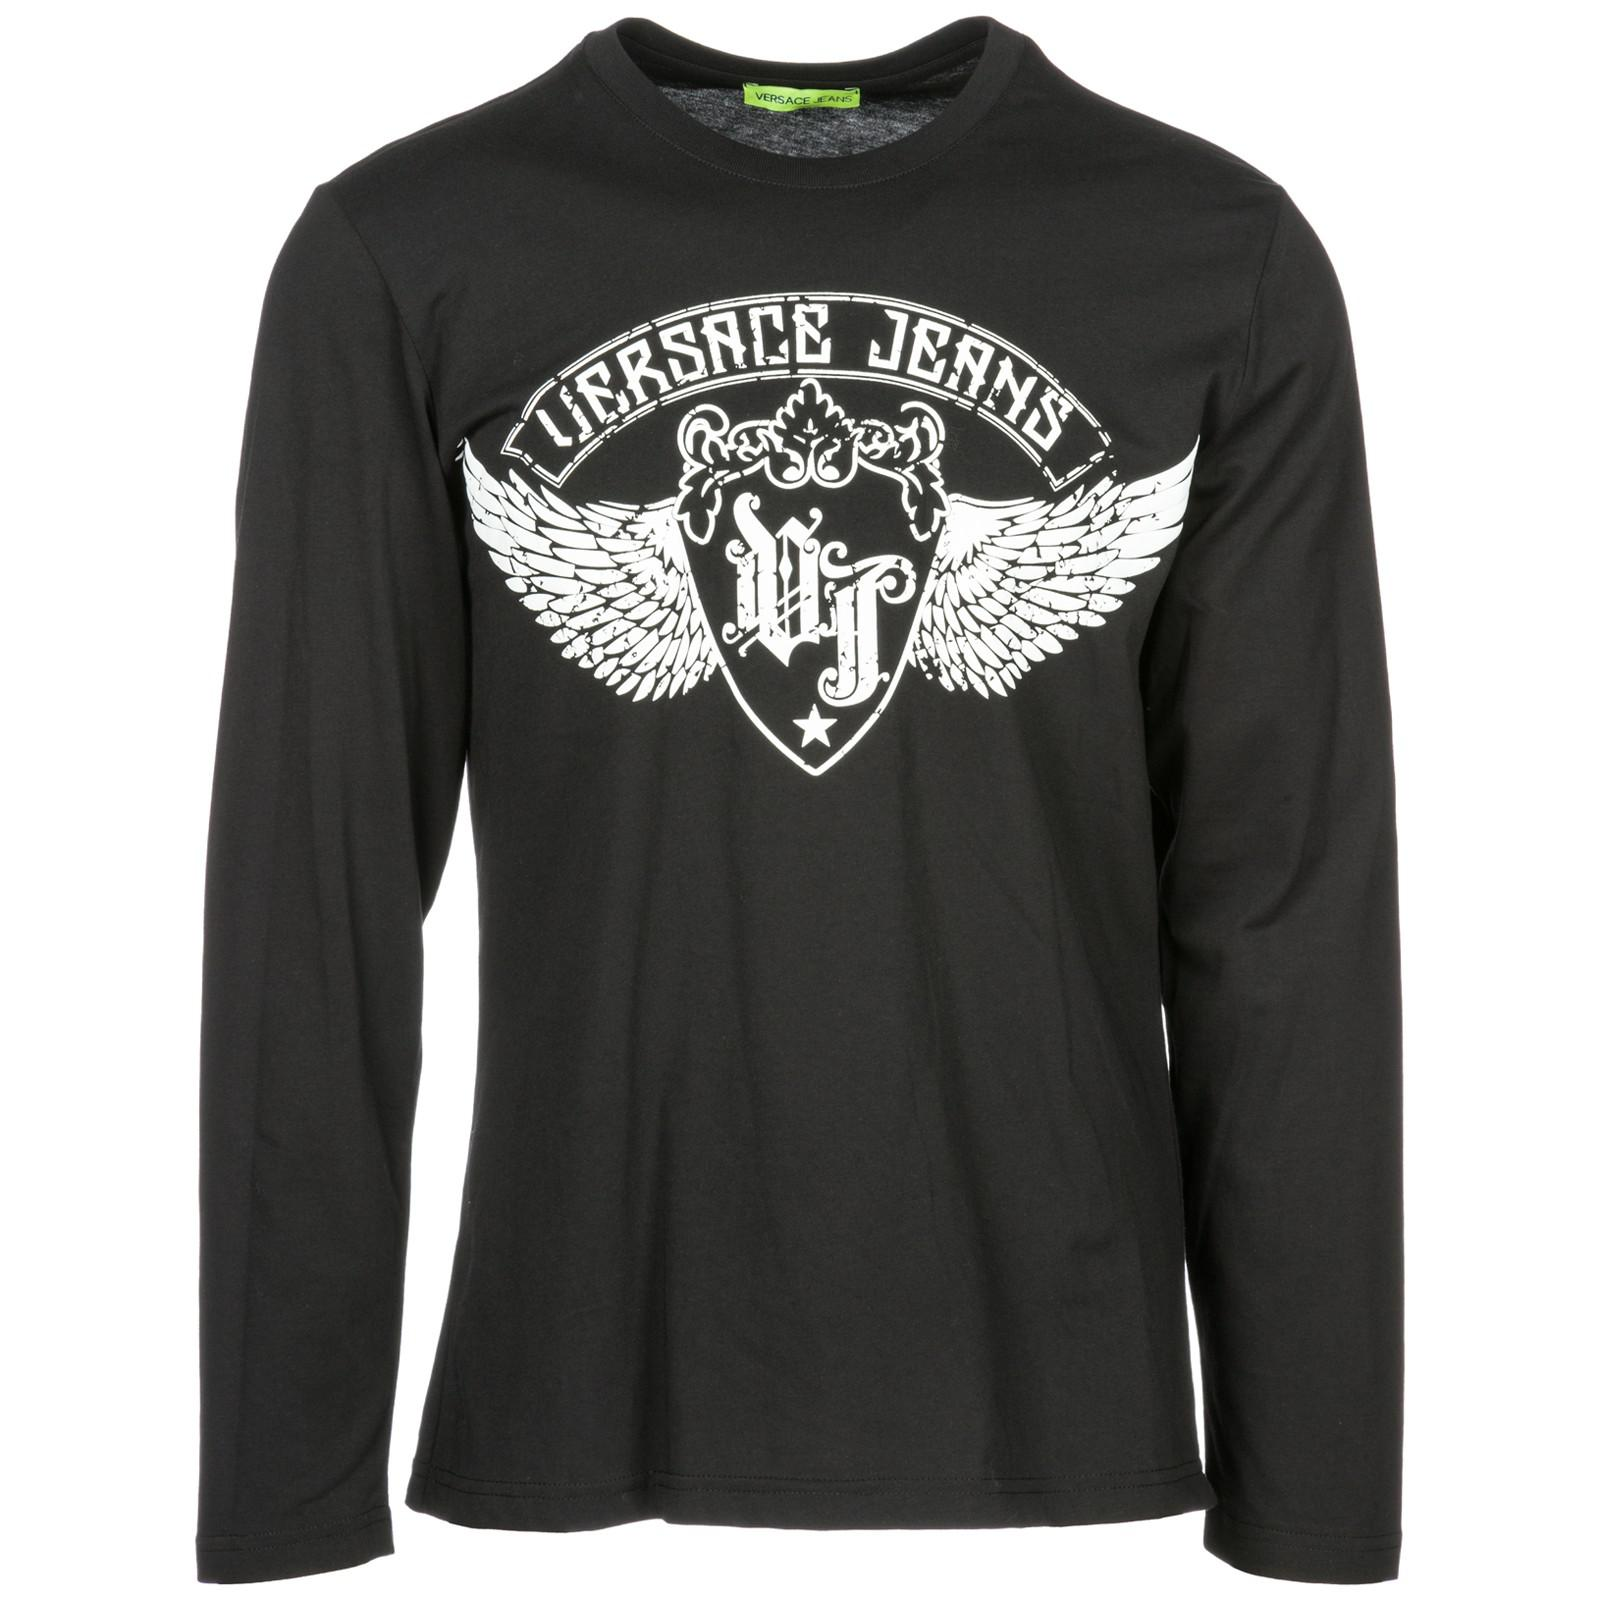 f2049afd Versace Jeans - Black Long Sleeve T-shirt Crew Neckline for Men - Lyst.  View fullscreen